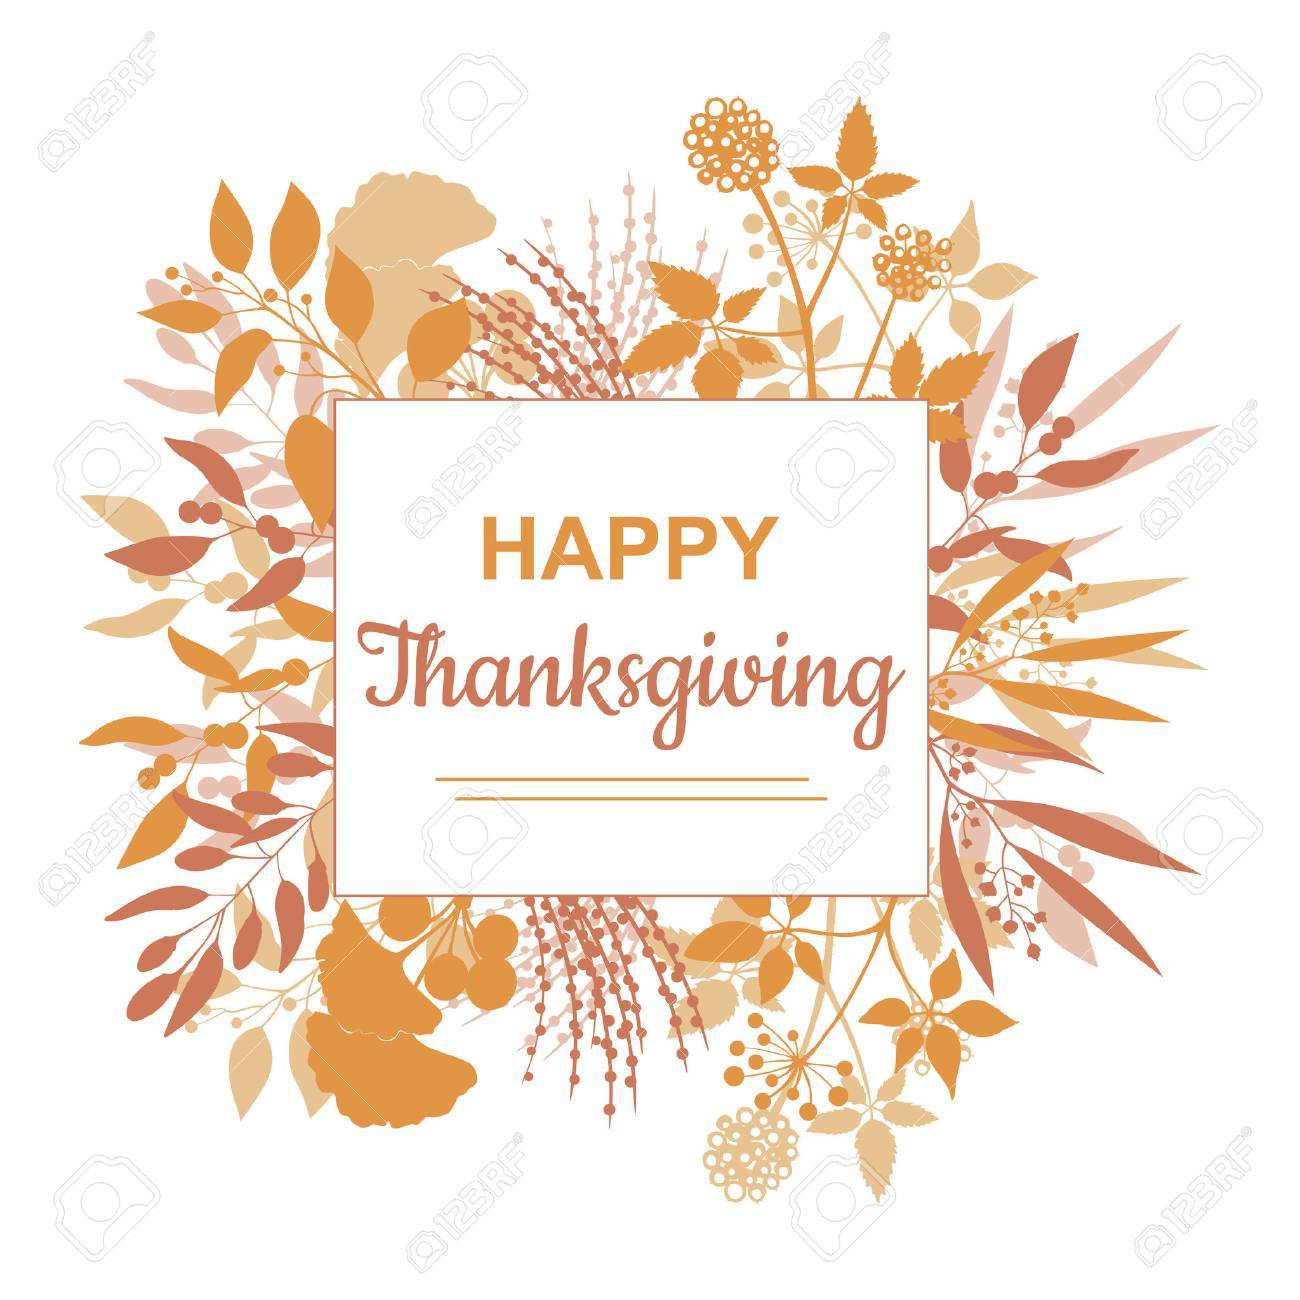 flat design style happy thanksgiving card template royalty free